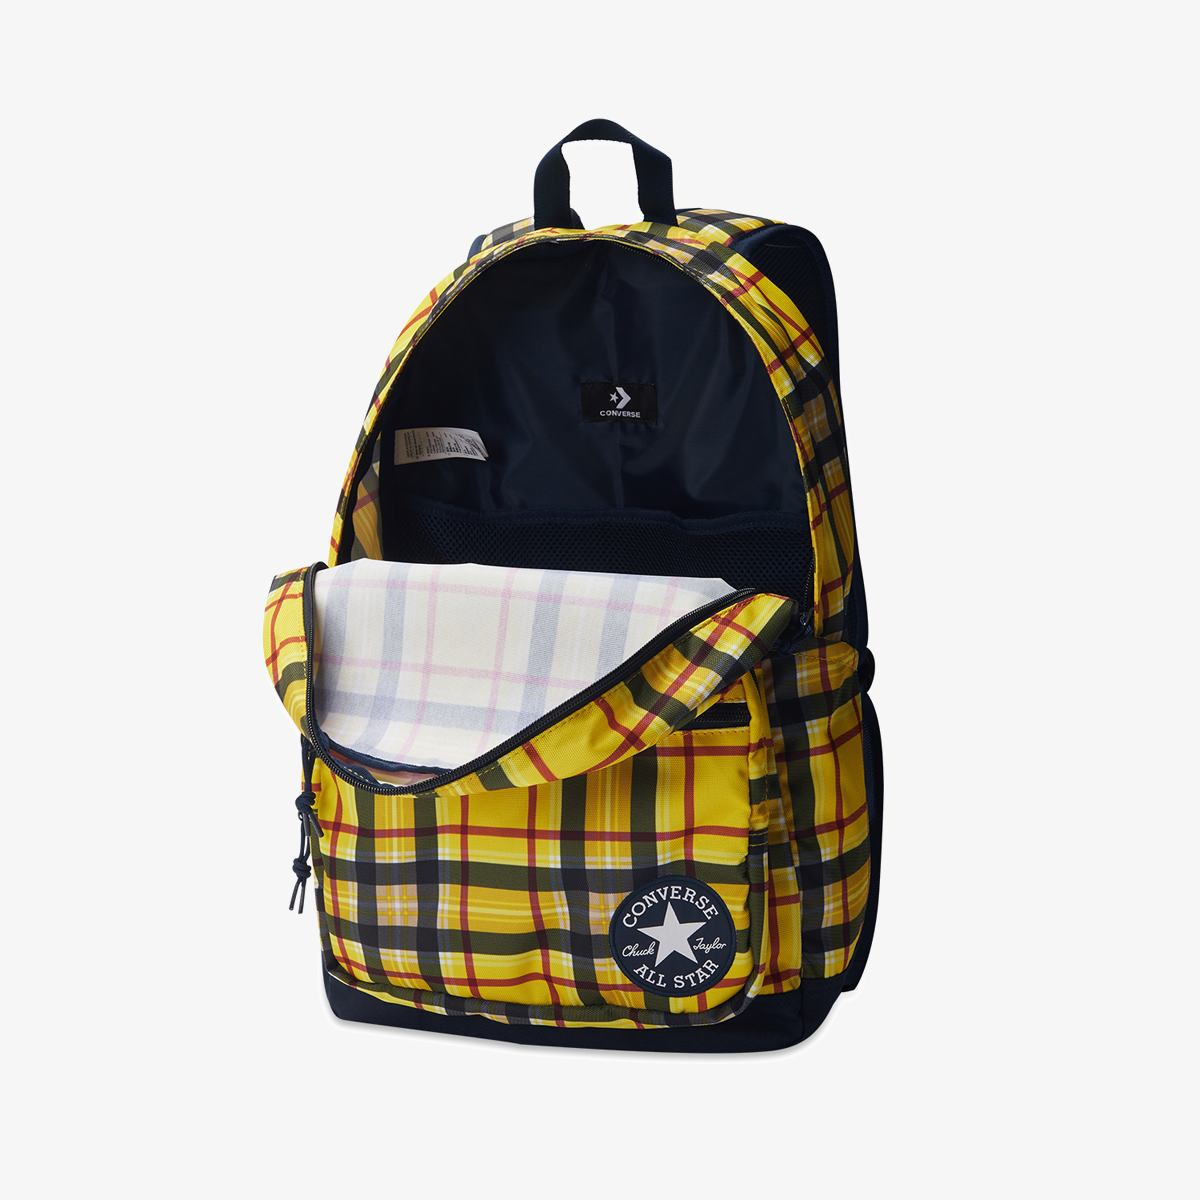 Рюкзак CONVERSE GO 2 BACKPACK YELLOW PLAID/OBSIDIAN